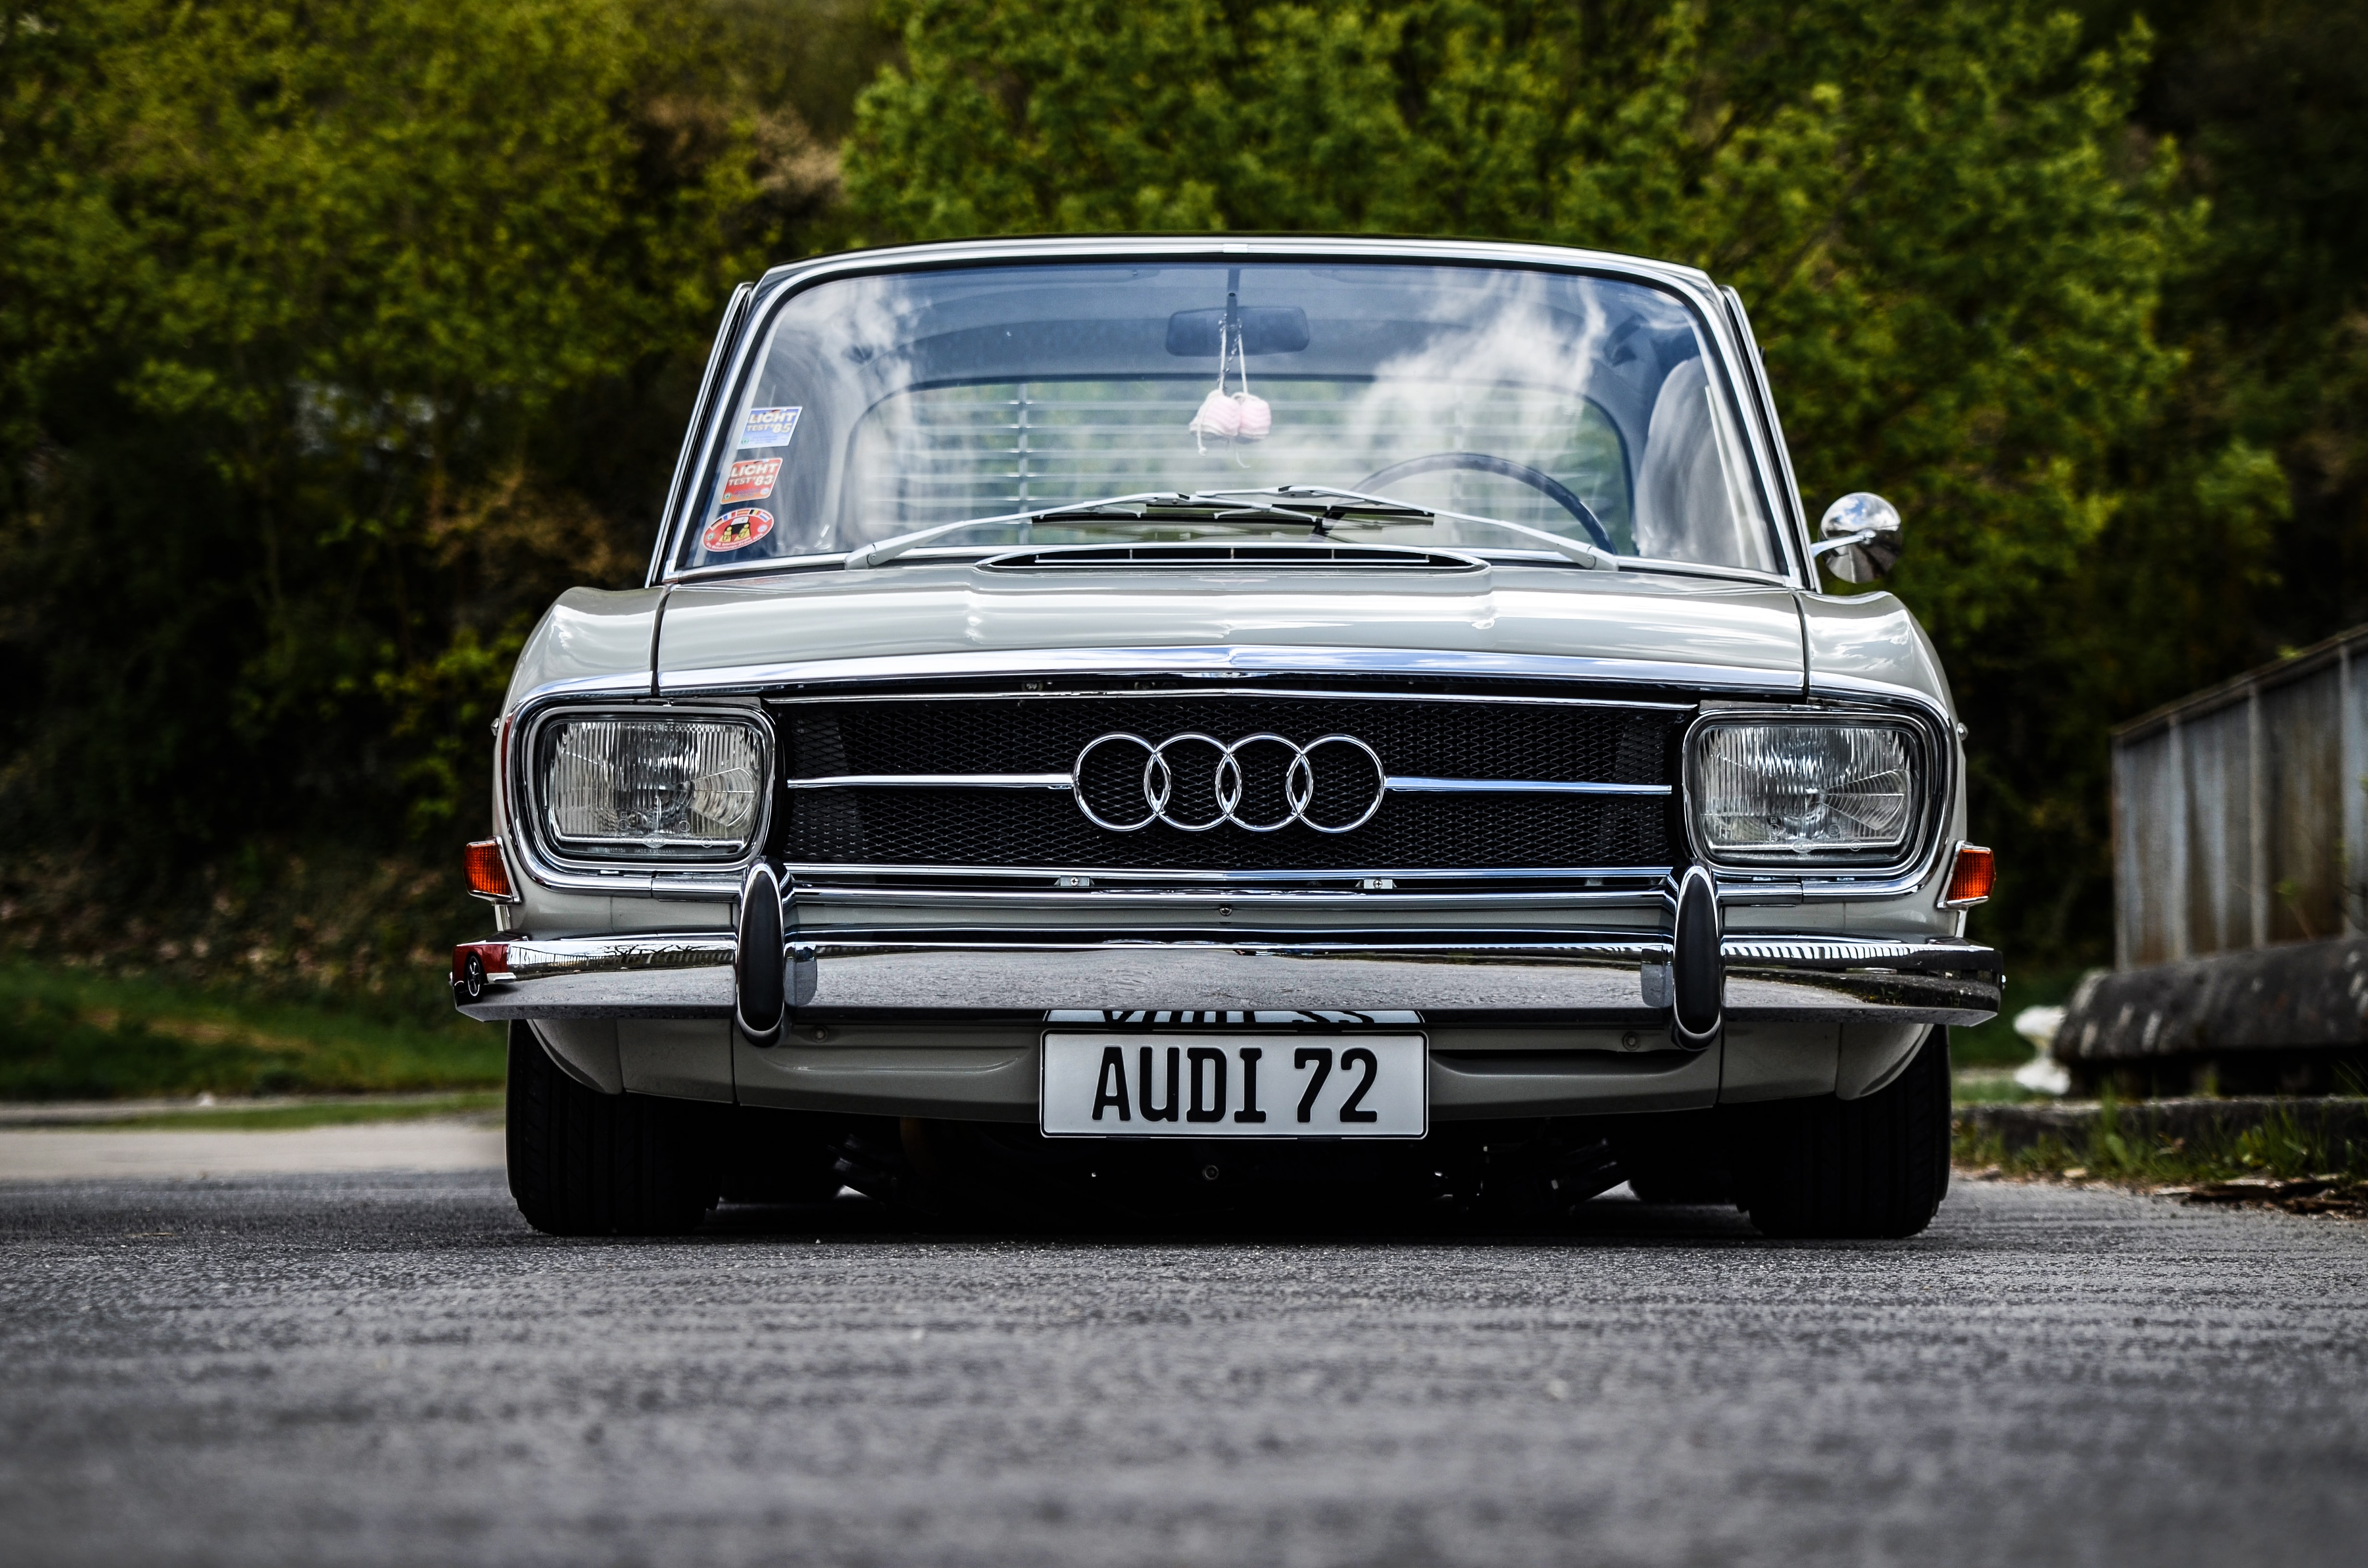 Front view of a vintage Audi car.